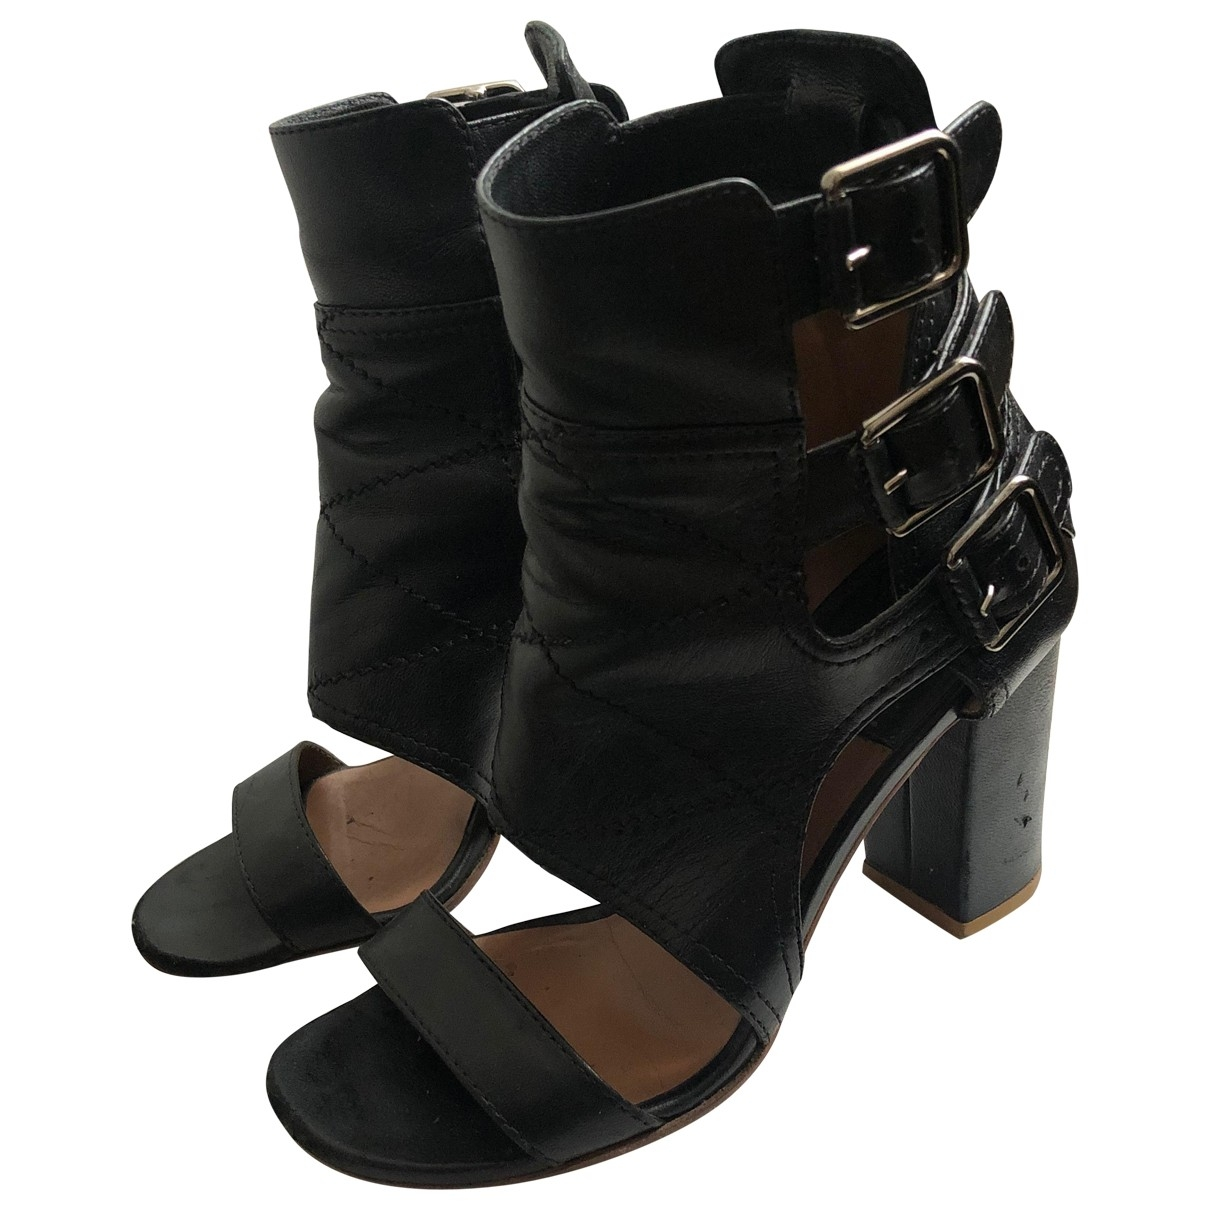 Laurence Dacade \N Black Leather Sandals for Women 36.5 EU